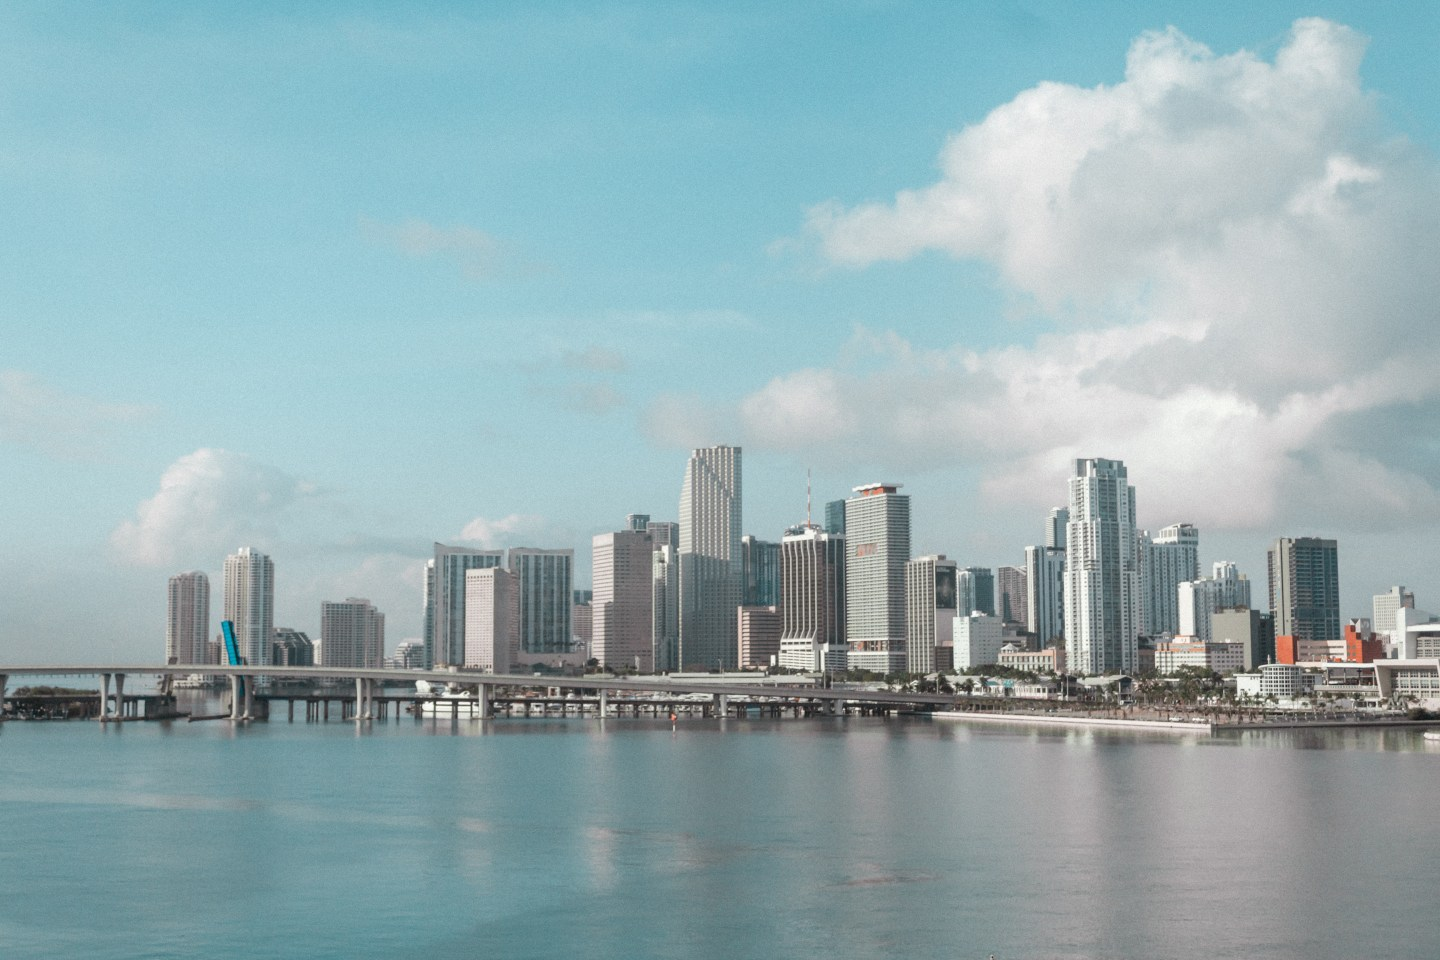 Illustrated by Sade - Instagrammable spot for photography of Miami skyline from McArthur Causeway.